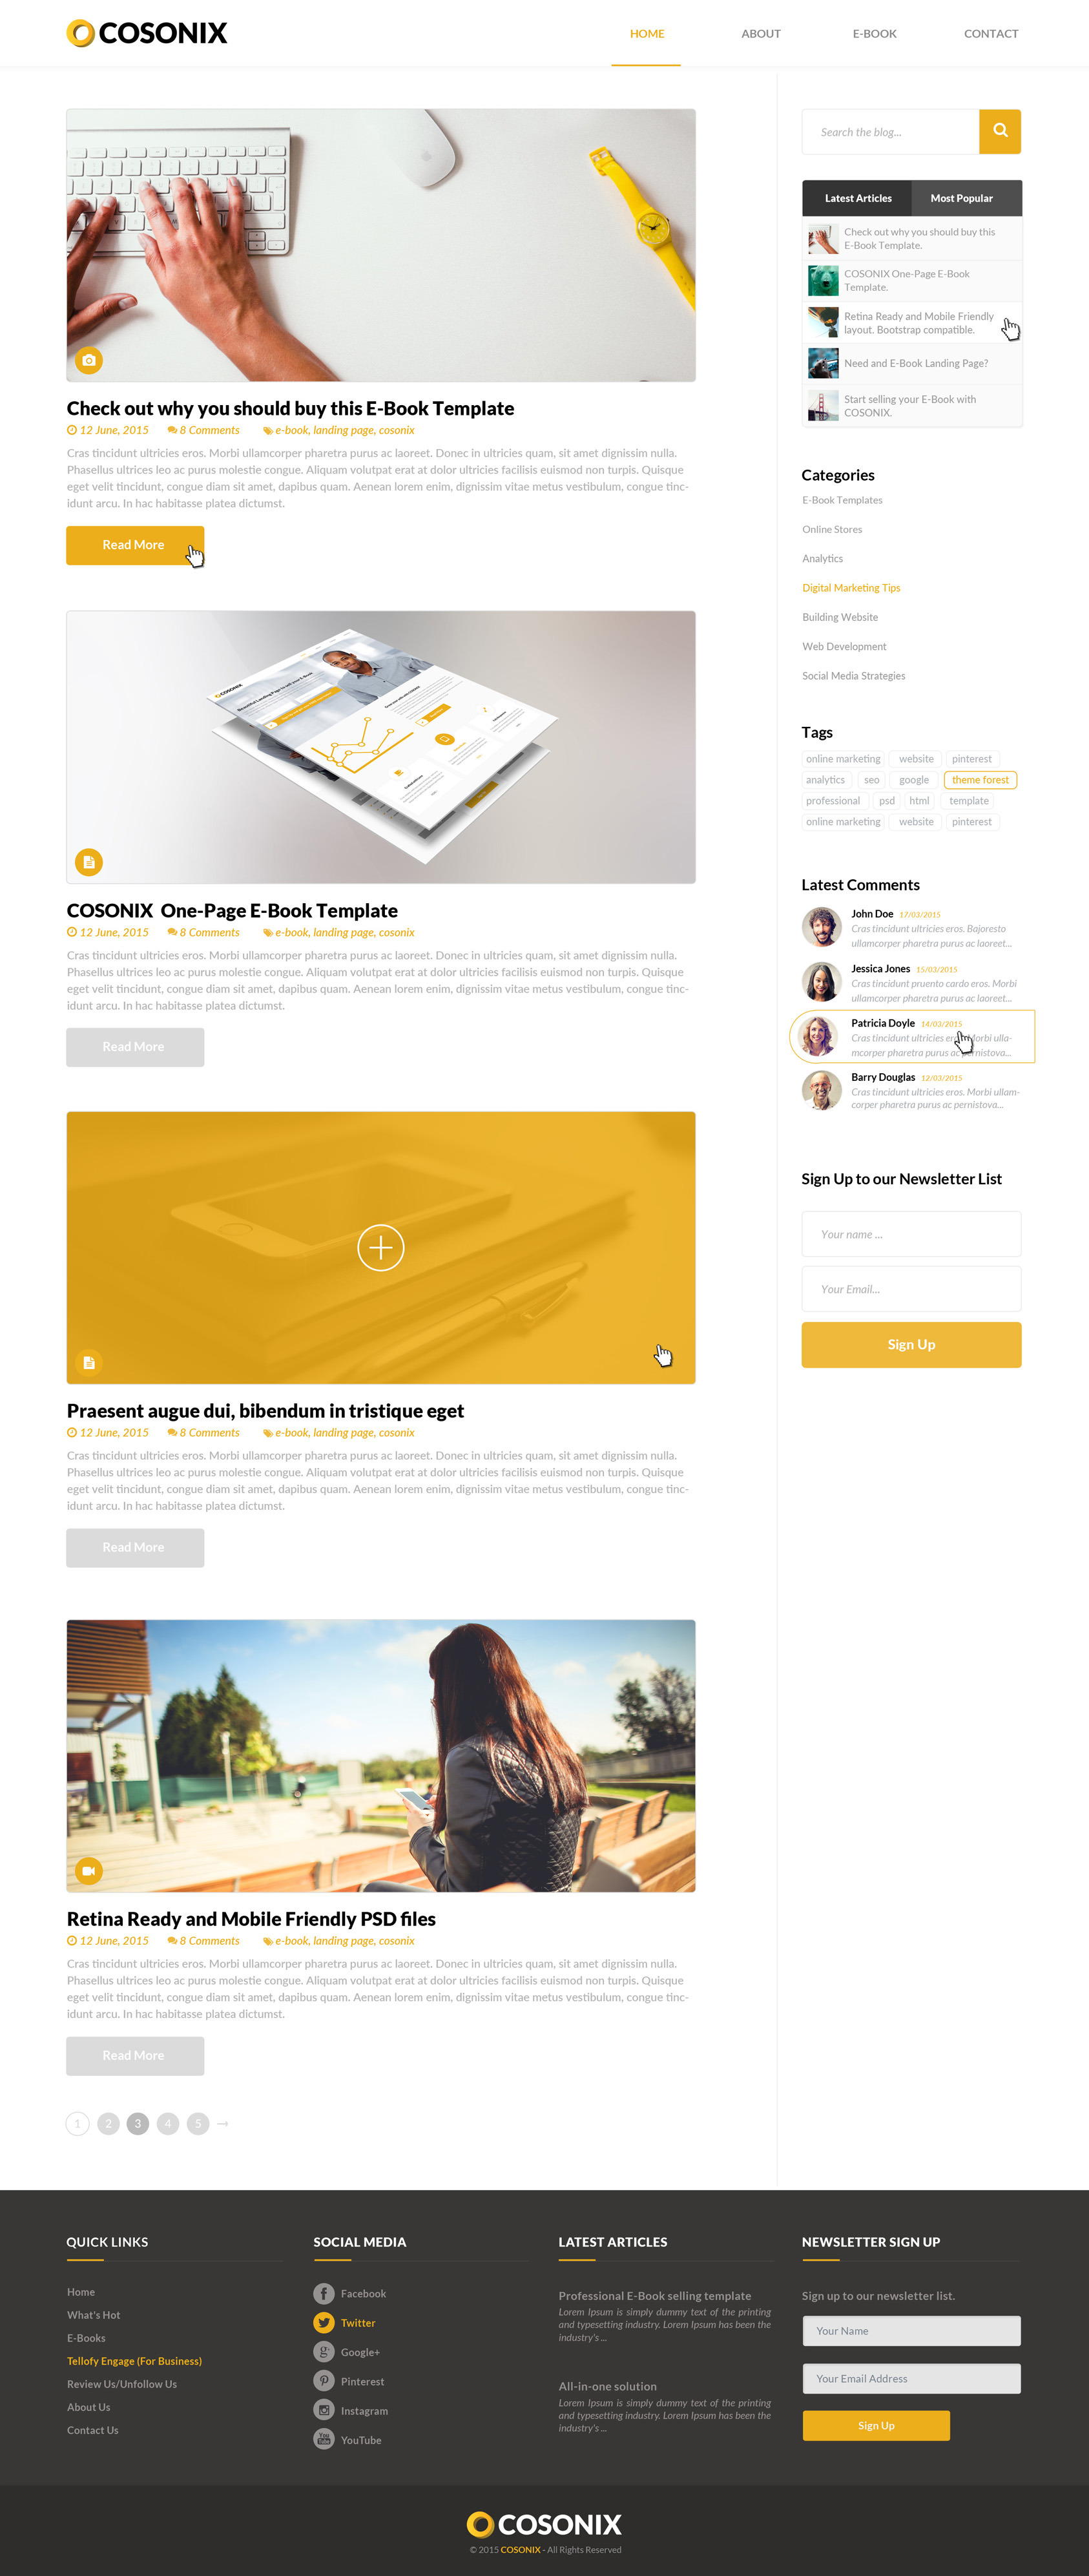 Cool 1 2 3 Nu Opgaver Kapitel Resume Small 1 Hexagon Template Regular 1 Inch Button Template 1 Year Experience Resume Format For Net Developer Old 10 Minute Resume Builder Fresh10 Off Coupon Template Cosonix One Page E Book PSD Template By Fluent Themes | ThemeForest